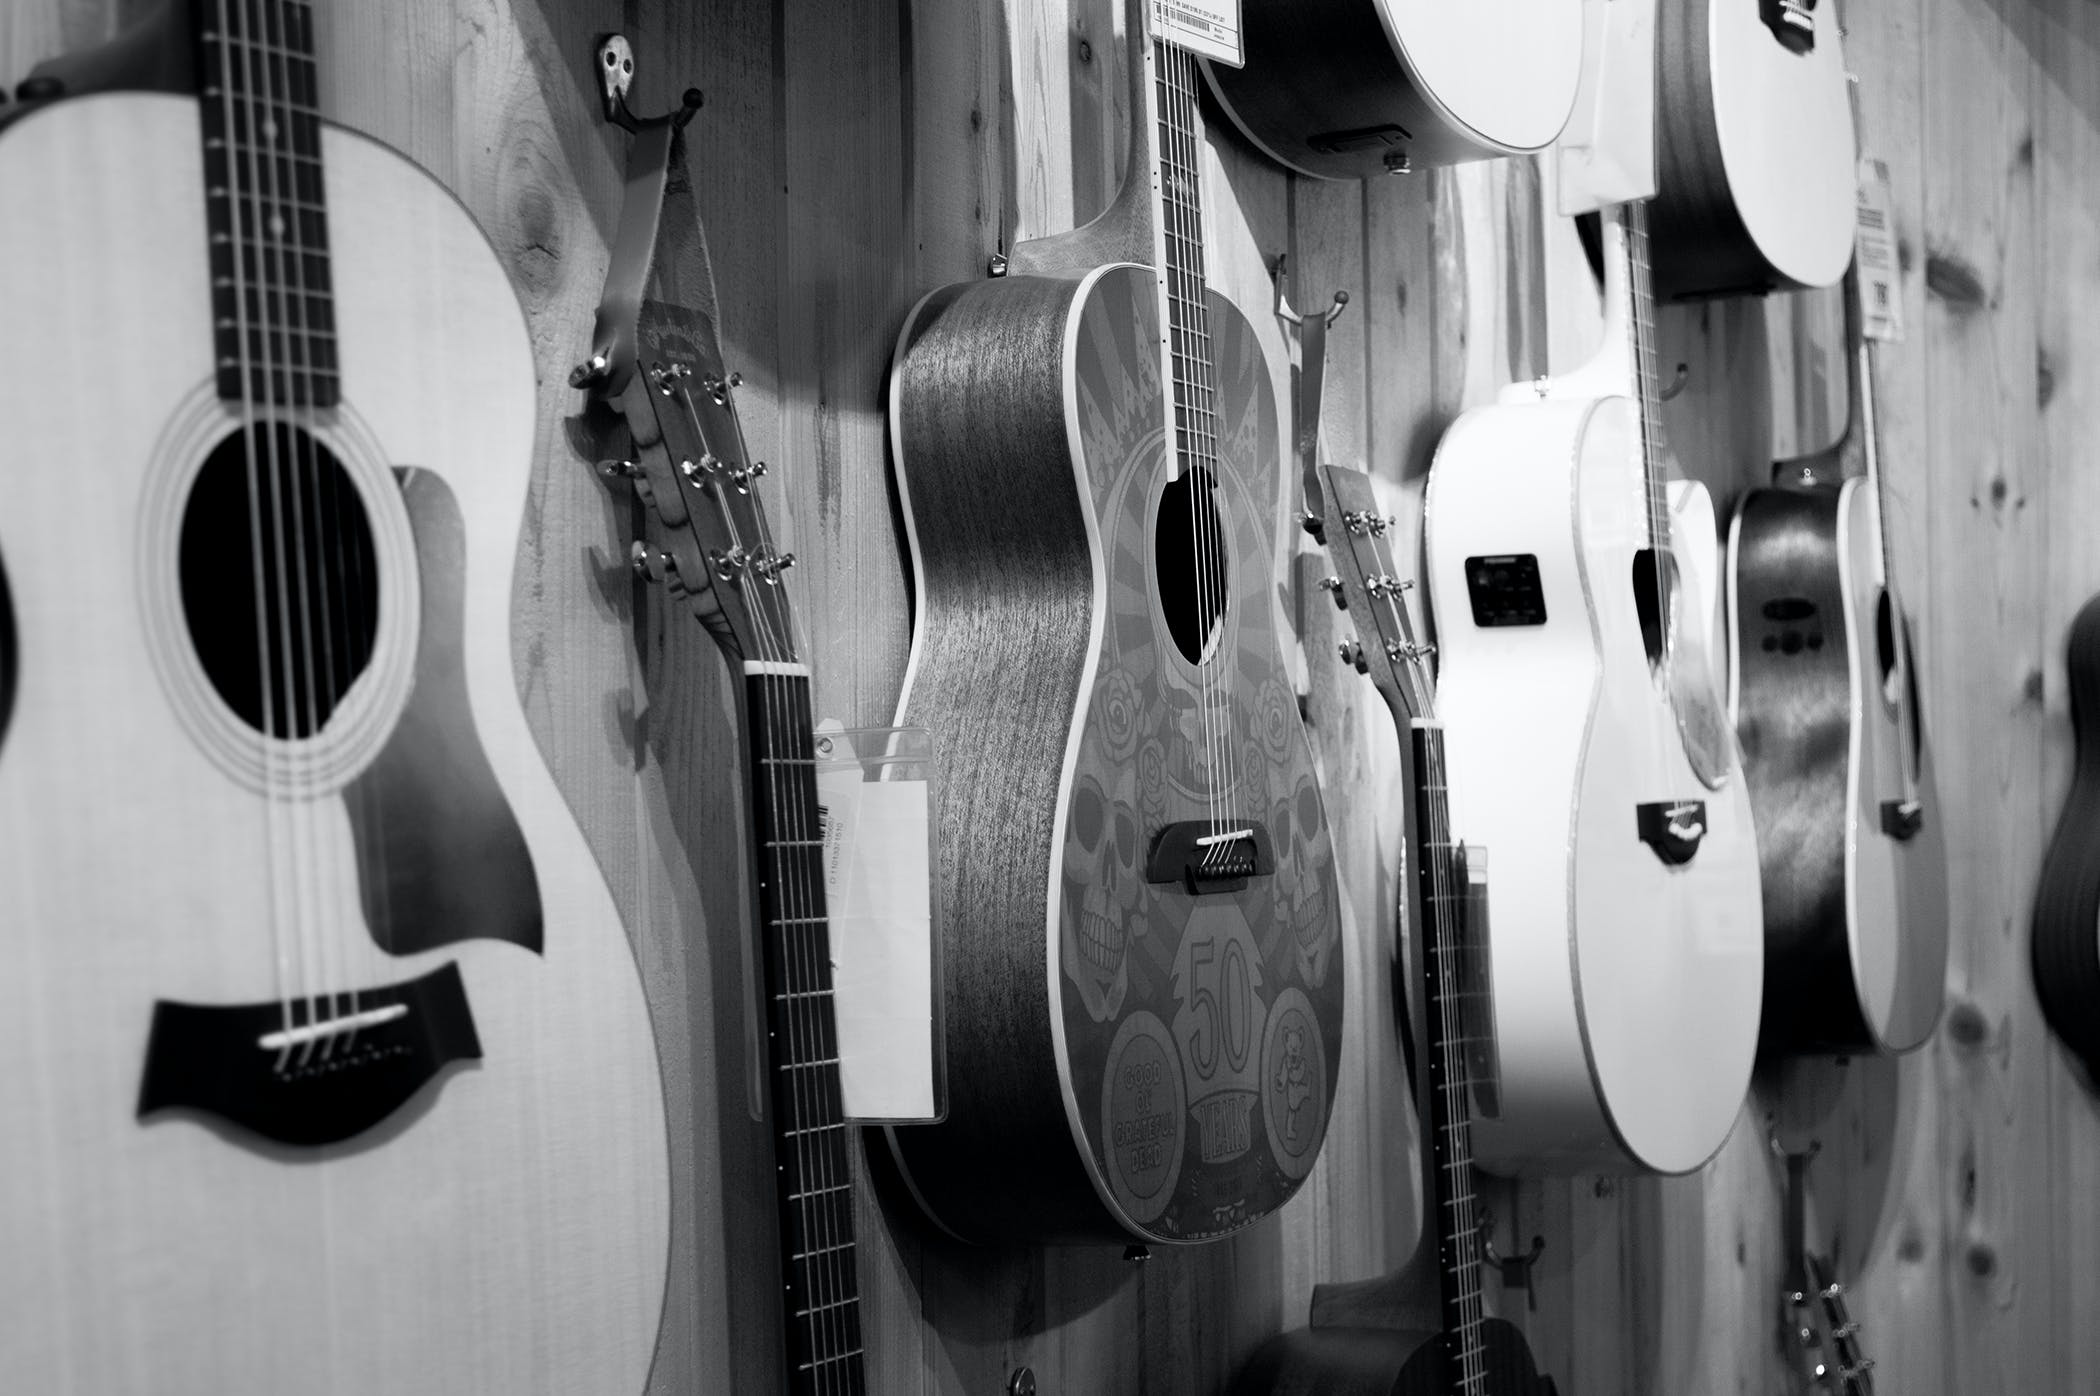 Gray Scale Photo of Acoustic Guitars